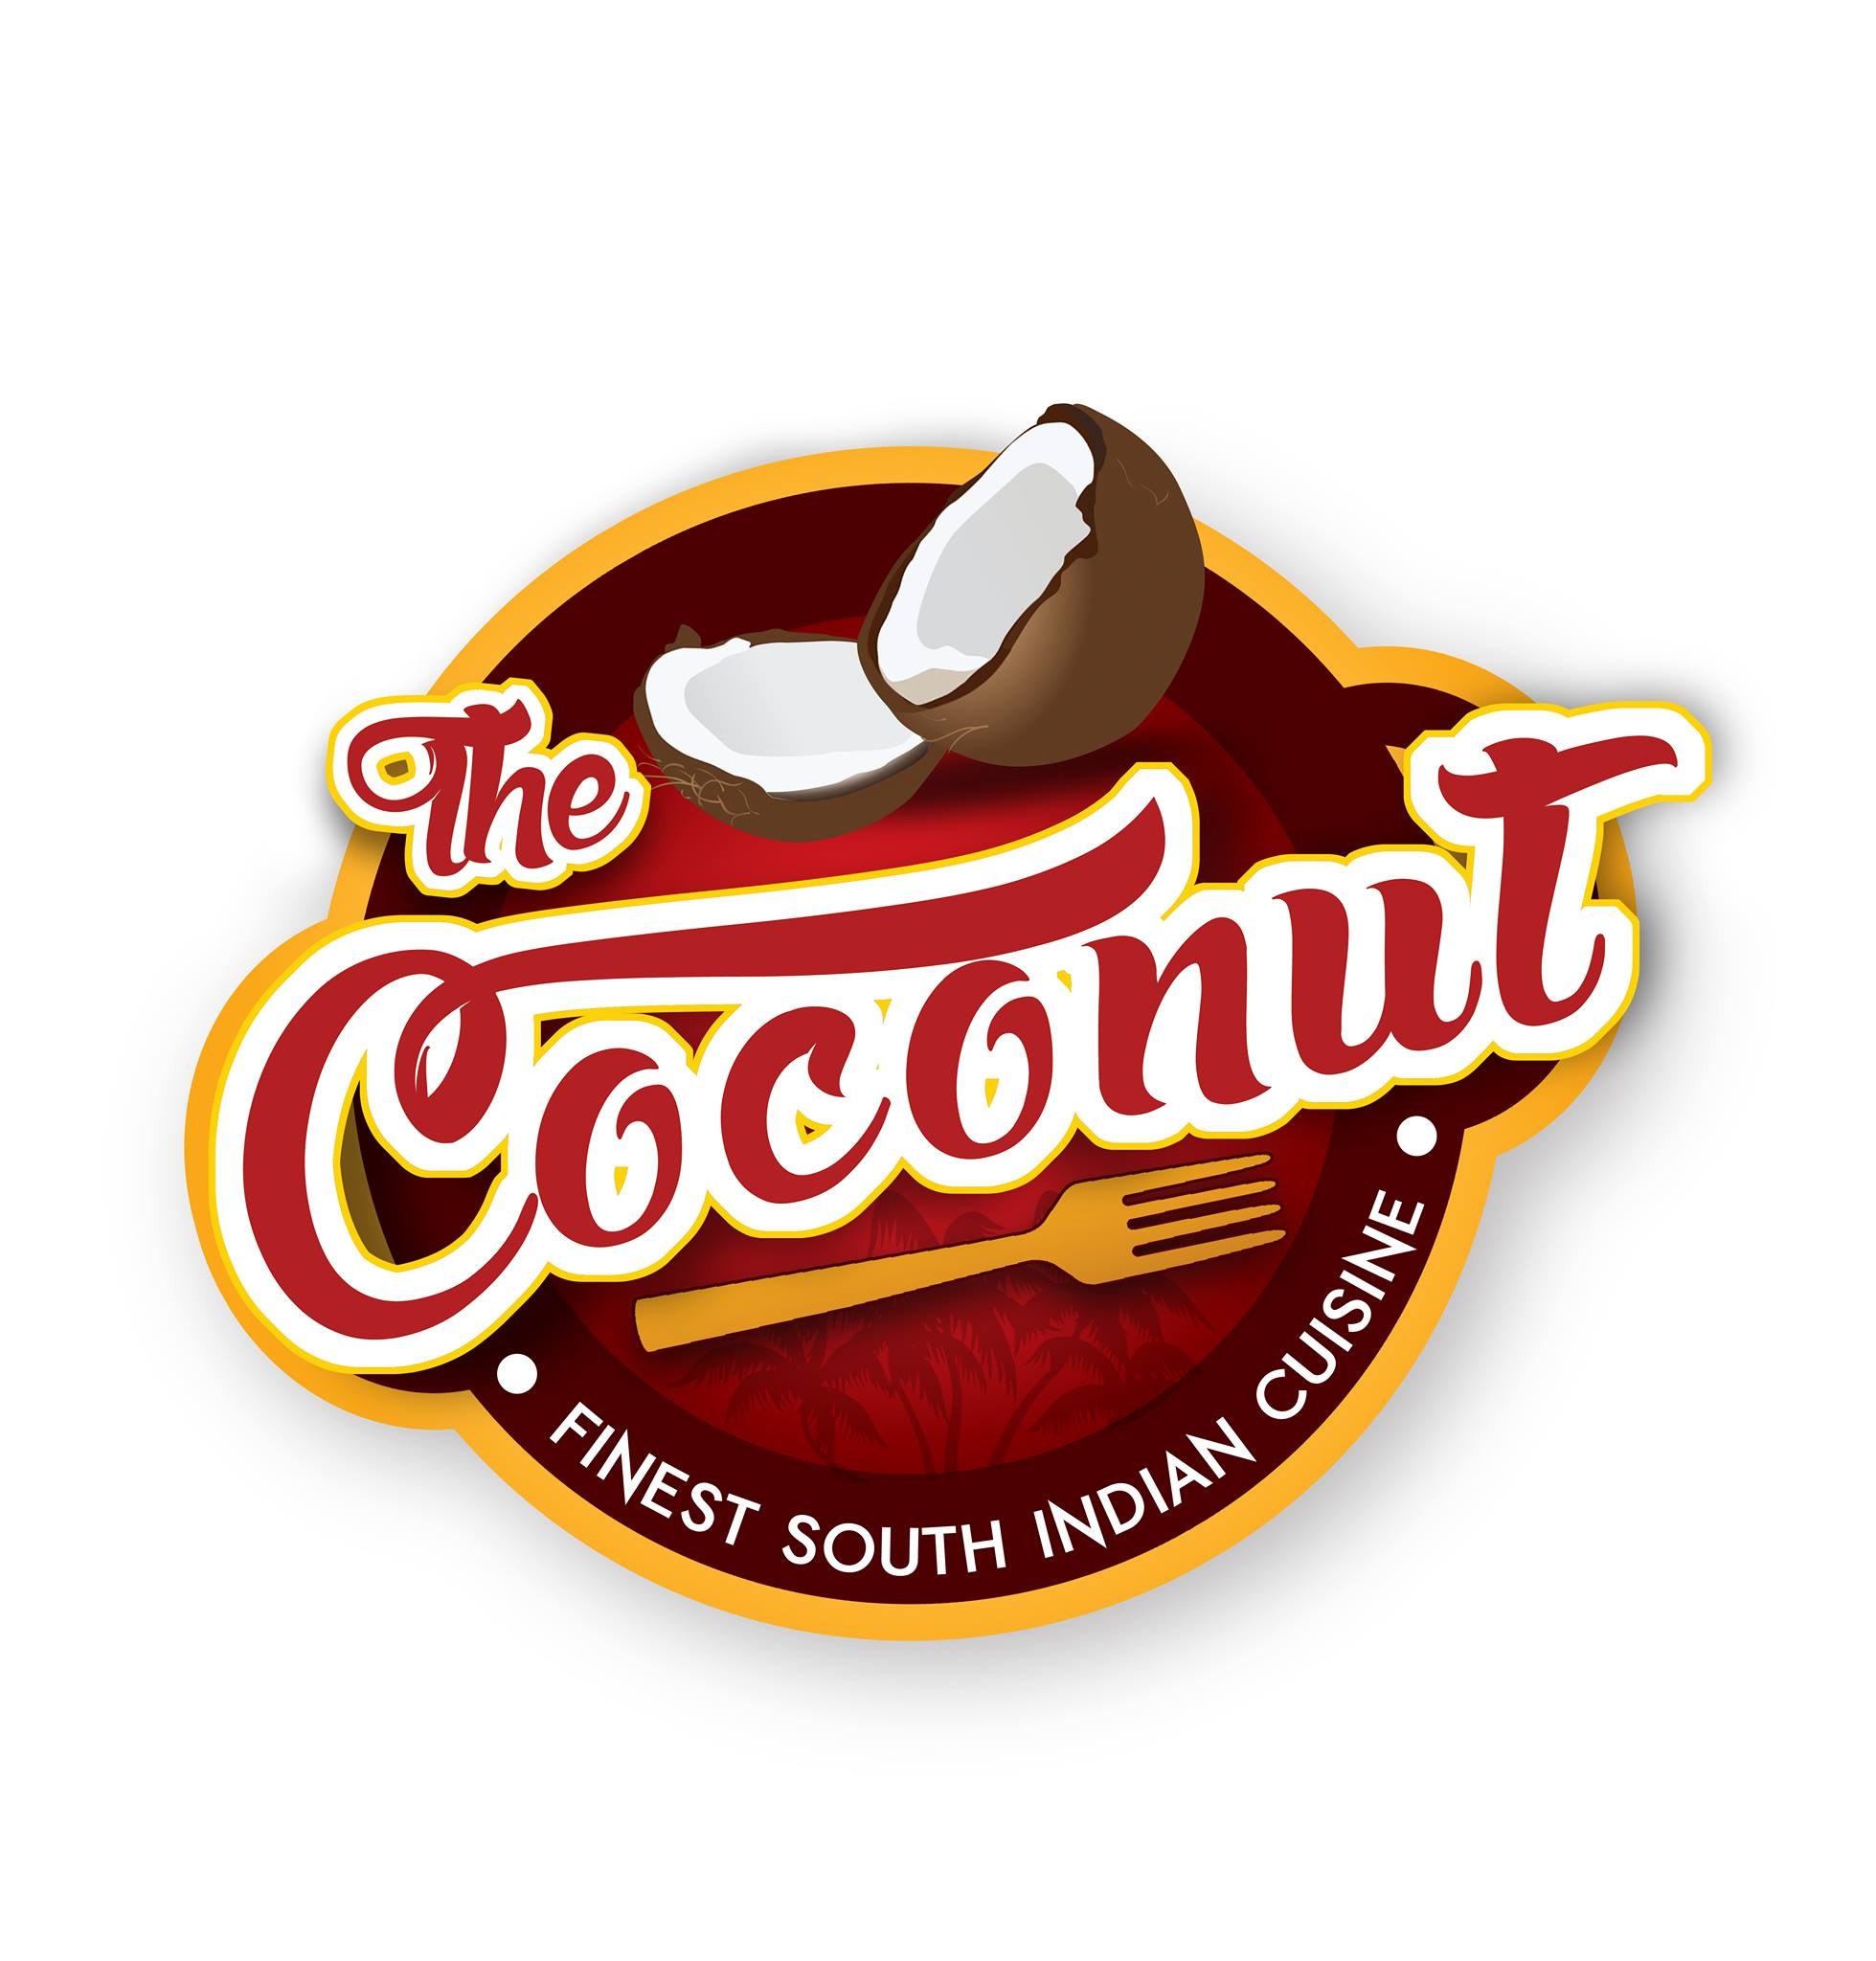 Taste - The Coconut Logo